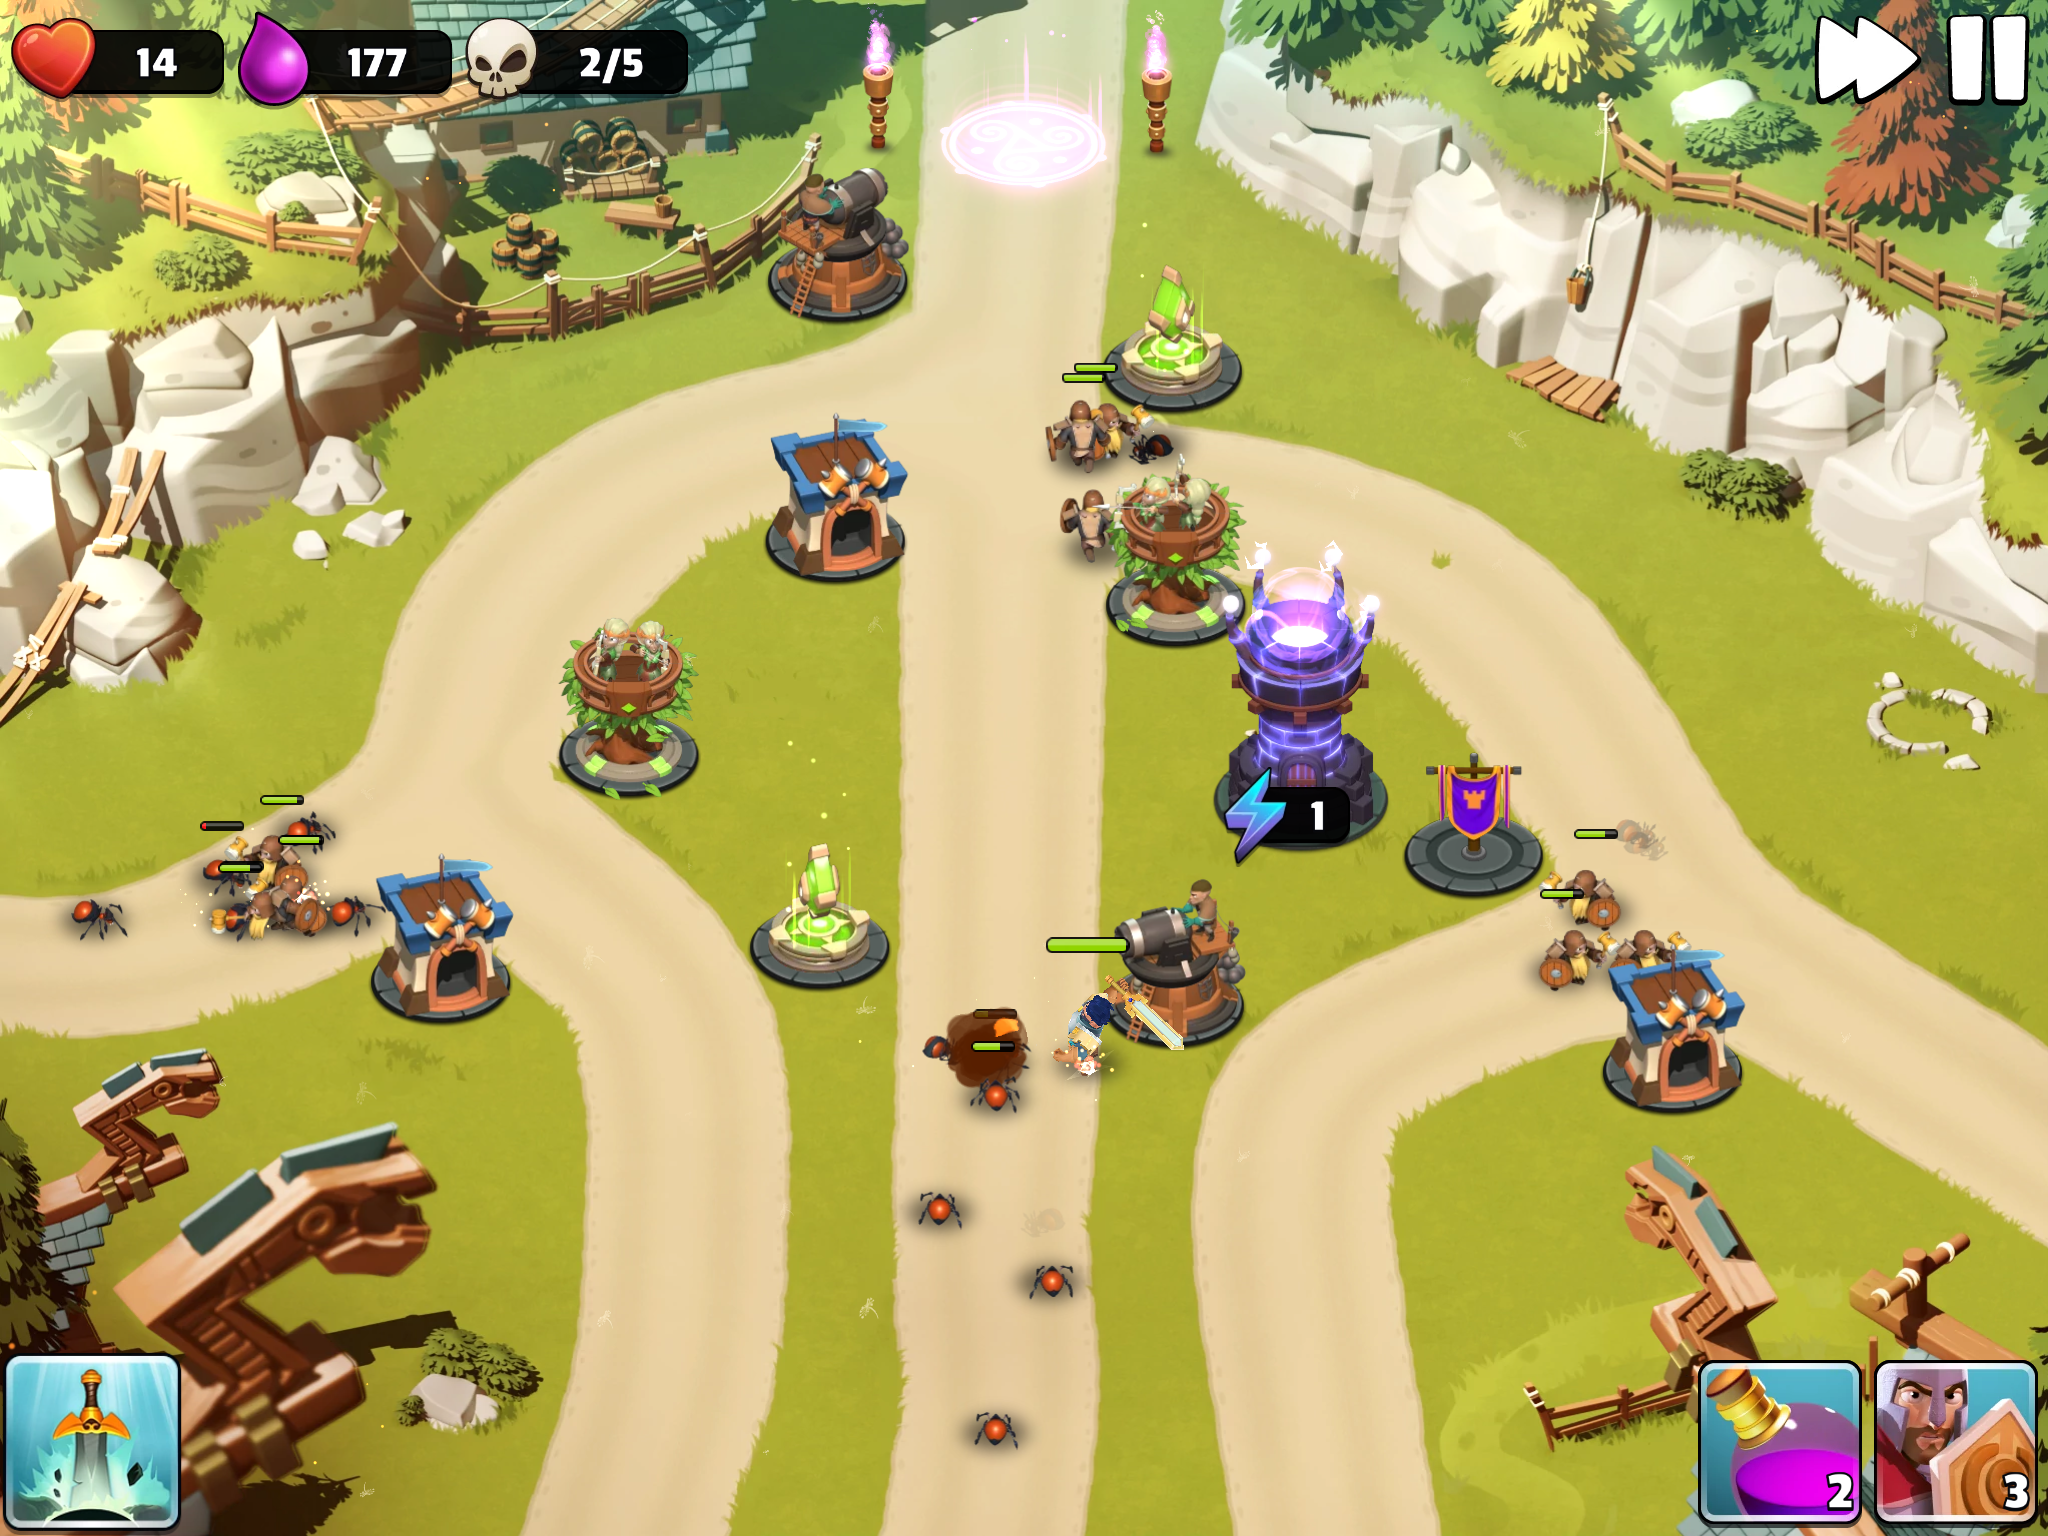 Castle Creeps TD review - A highly polished tower defence game